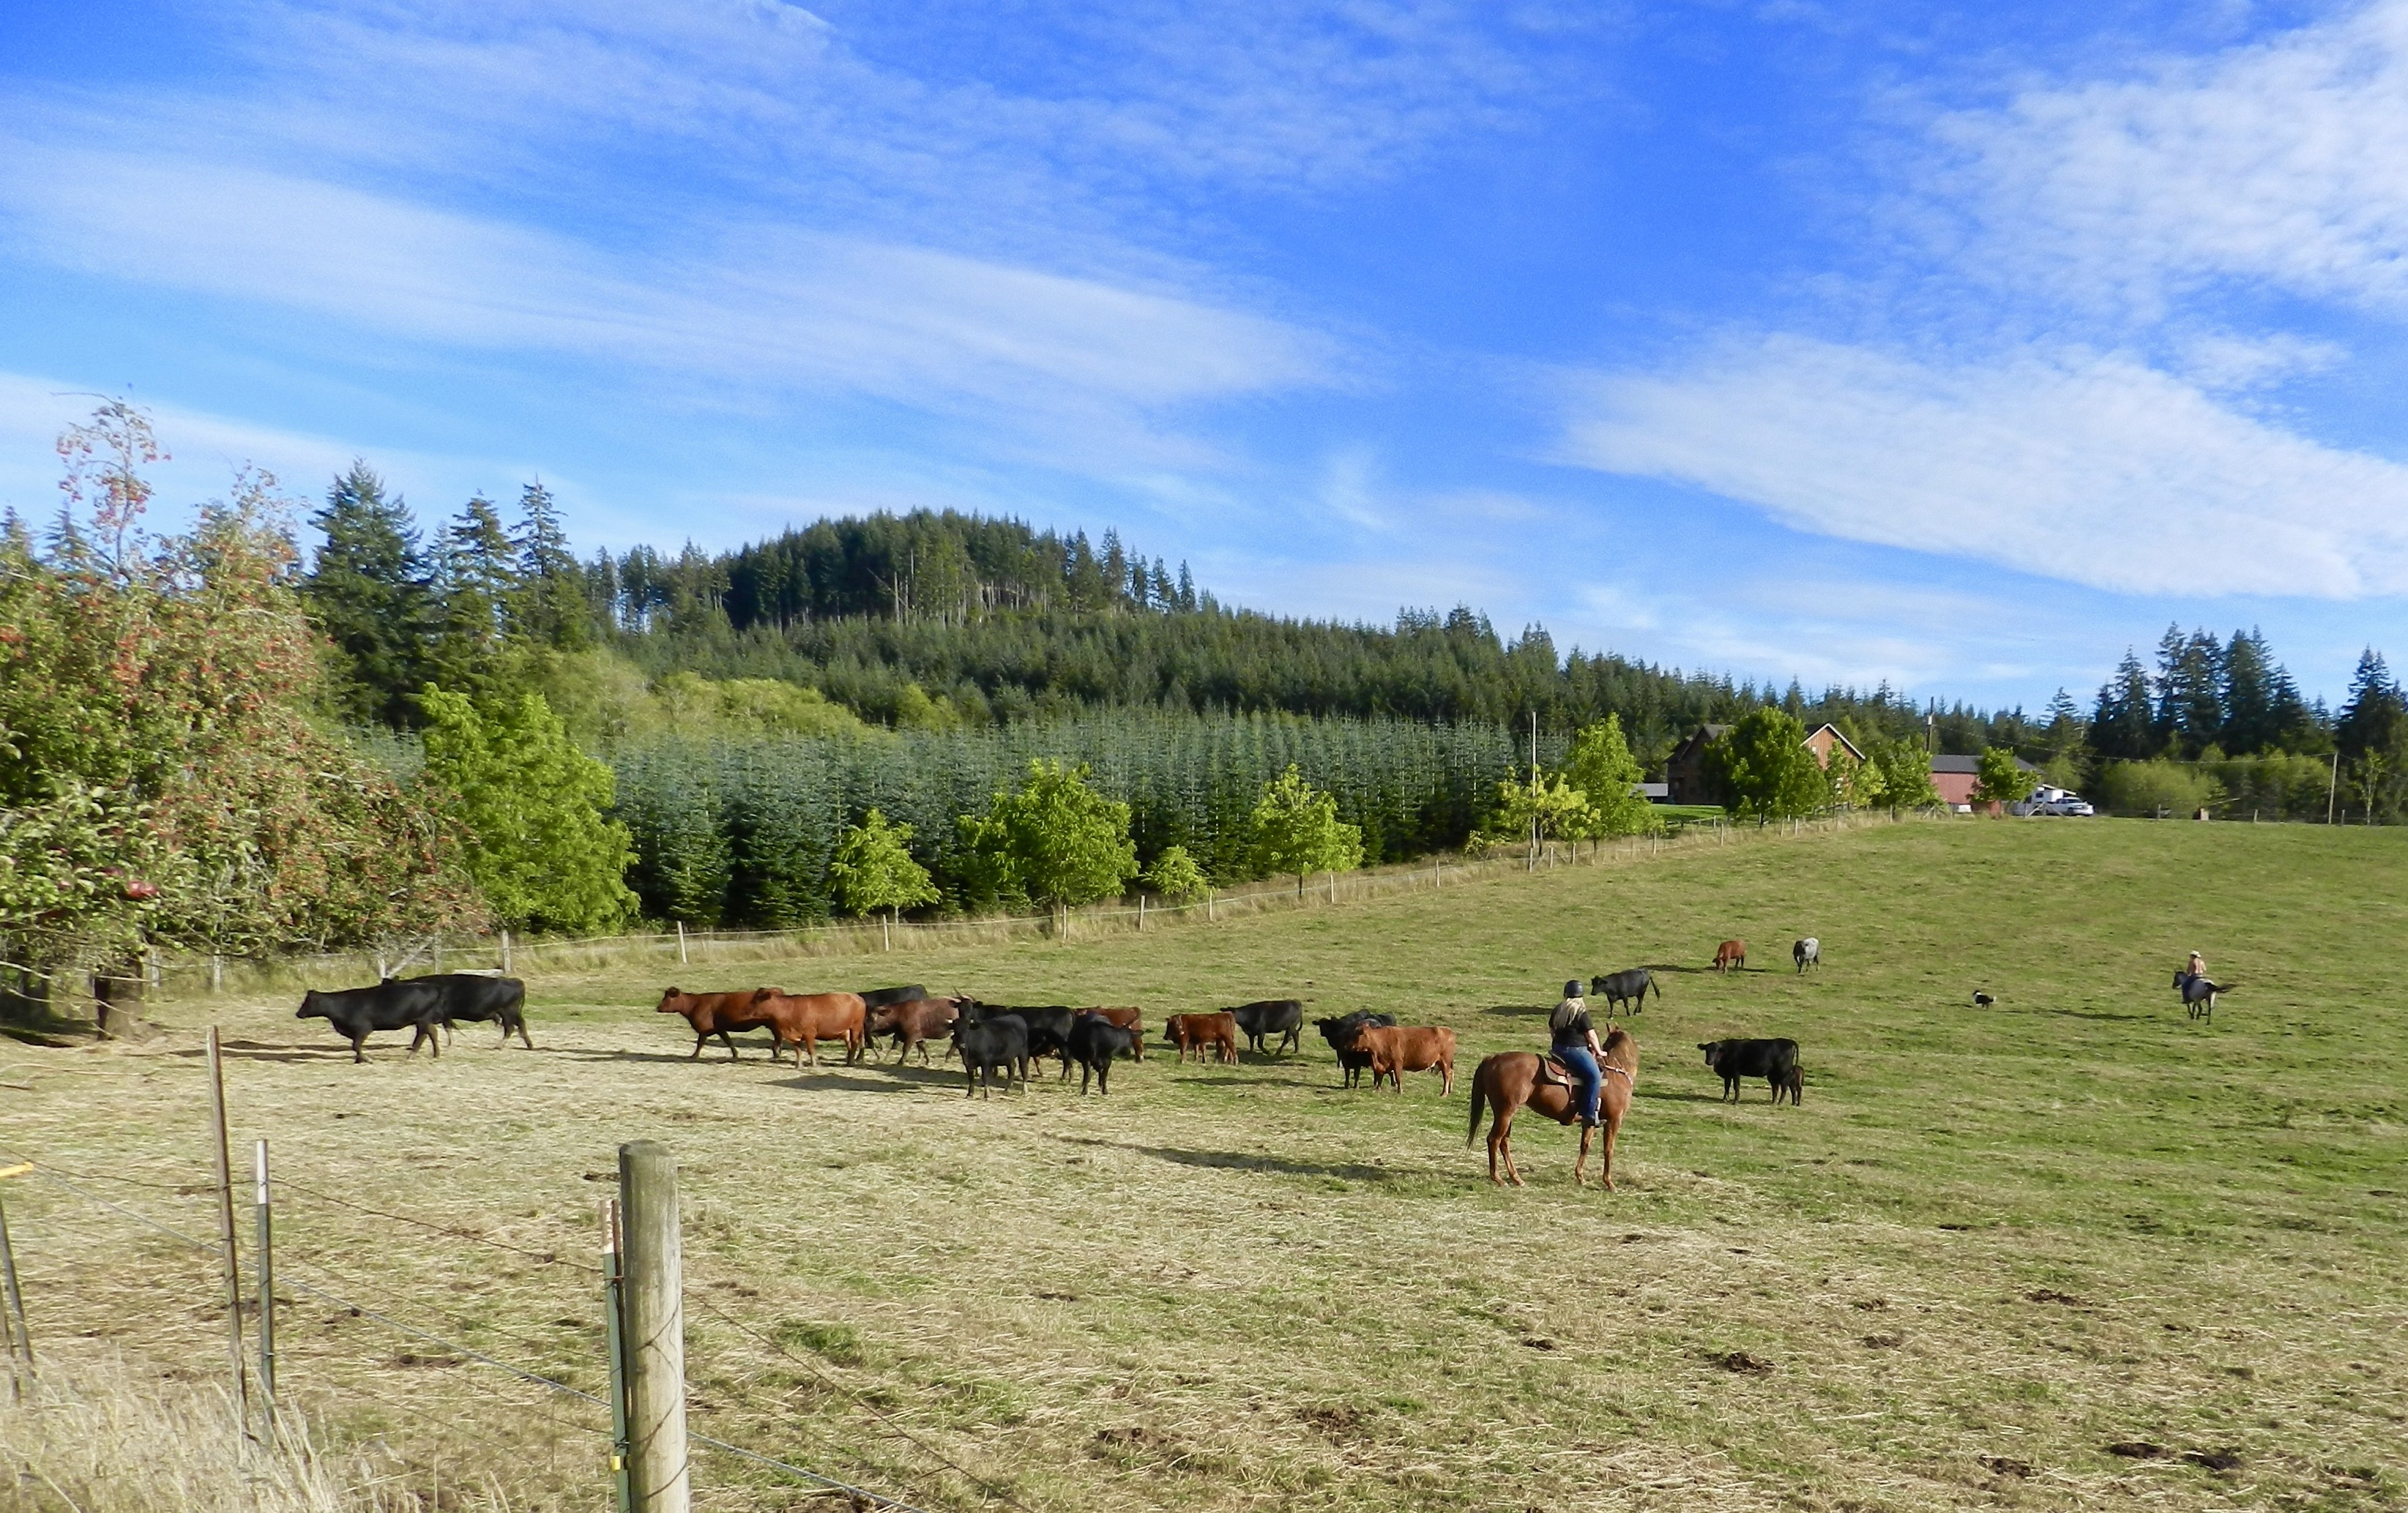 Rounding up the cattle at neighbors Mark and Cindy's Bender's pasture.